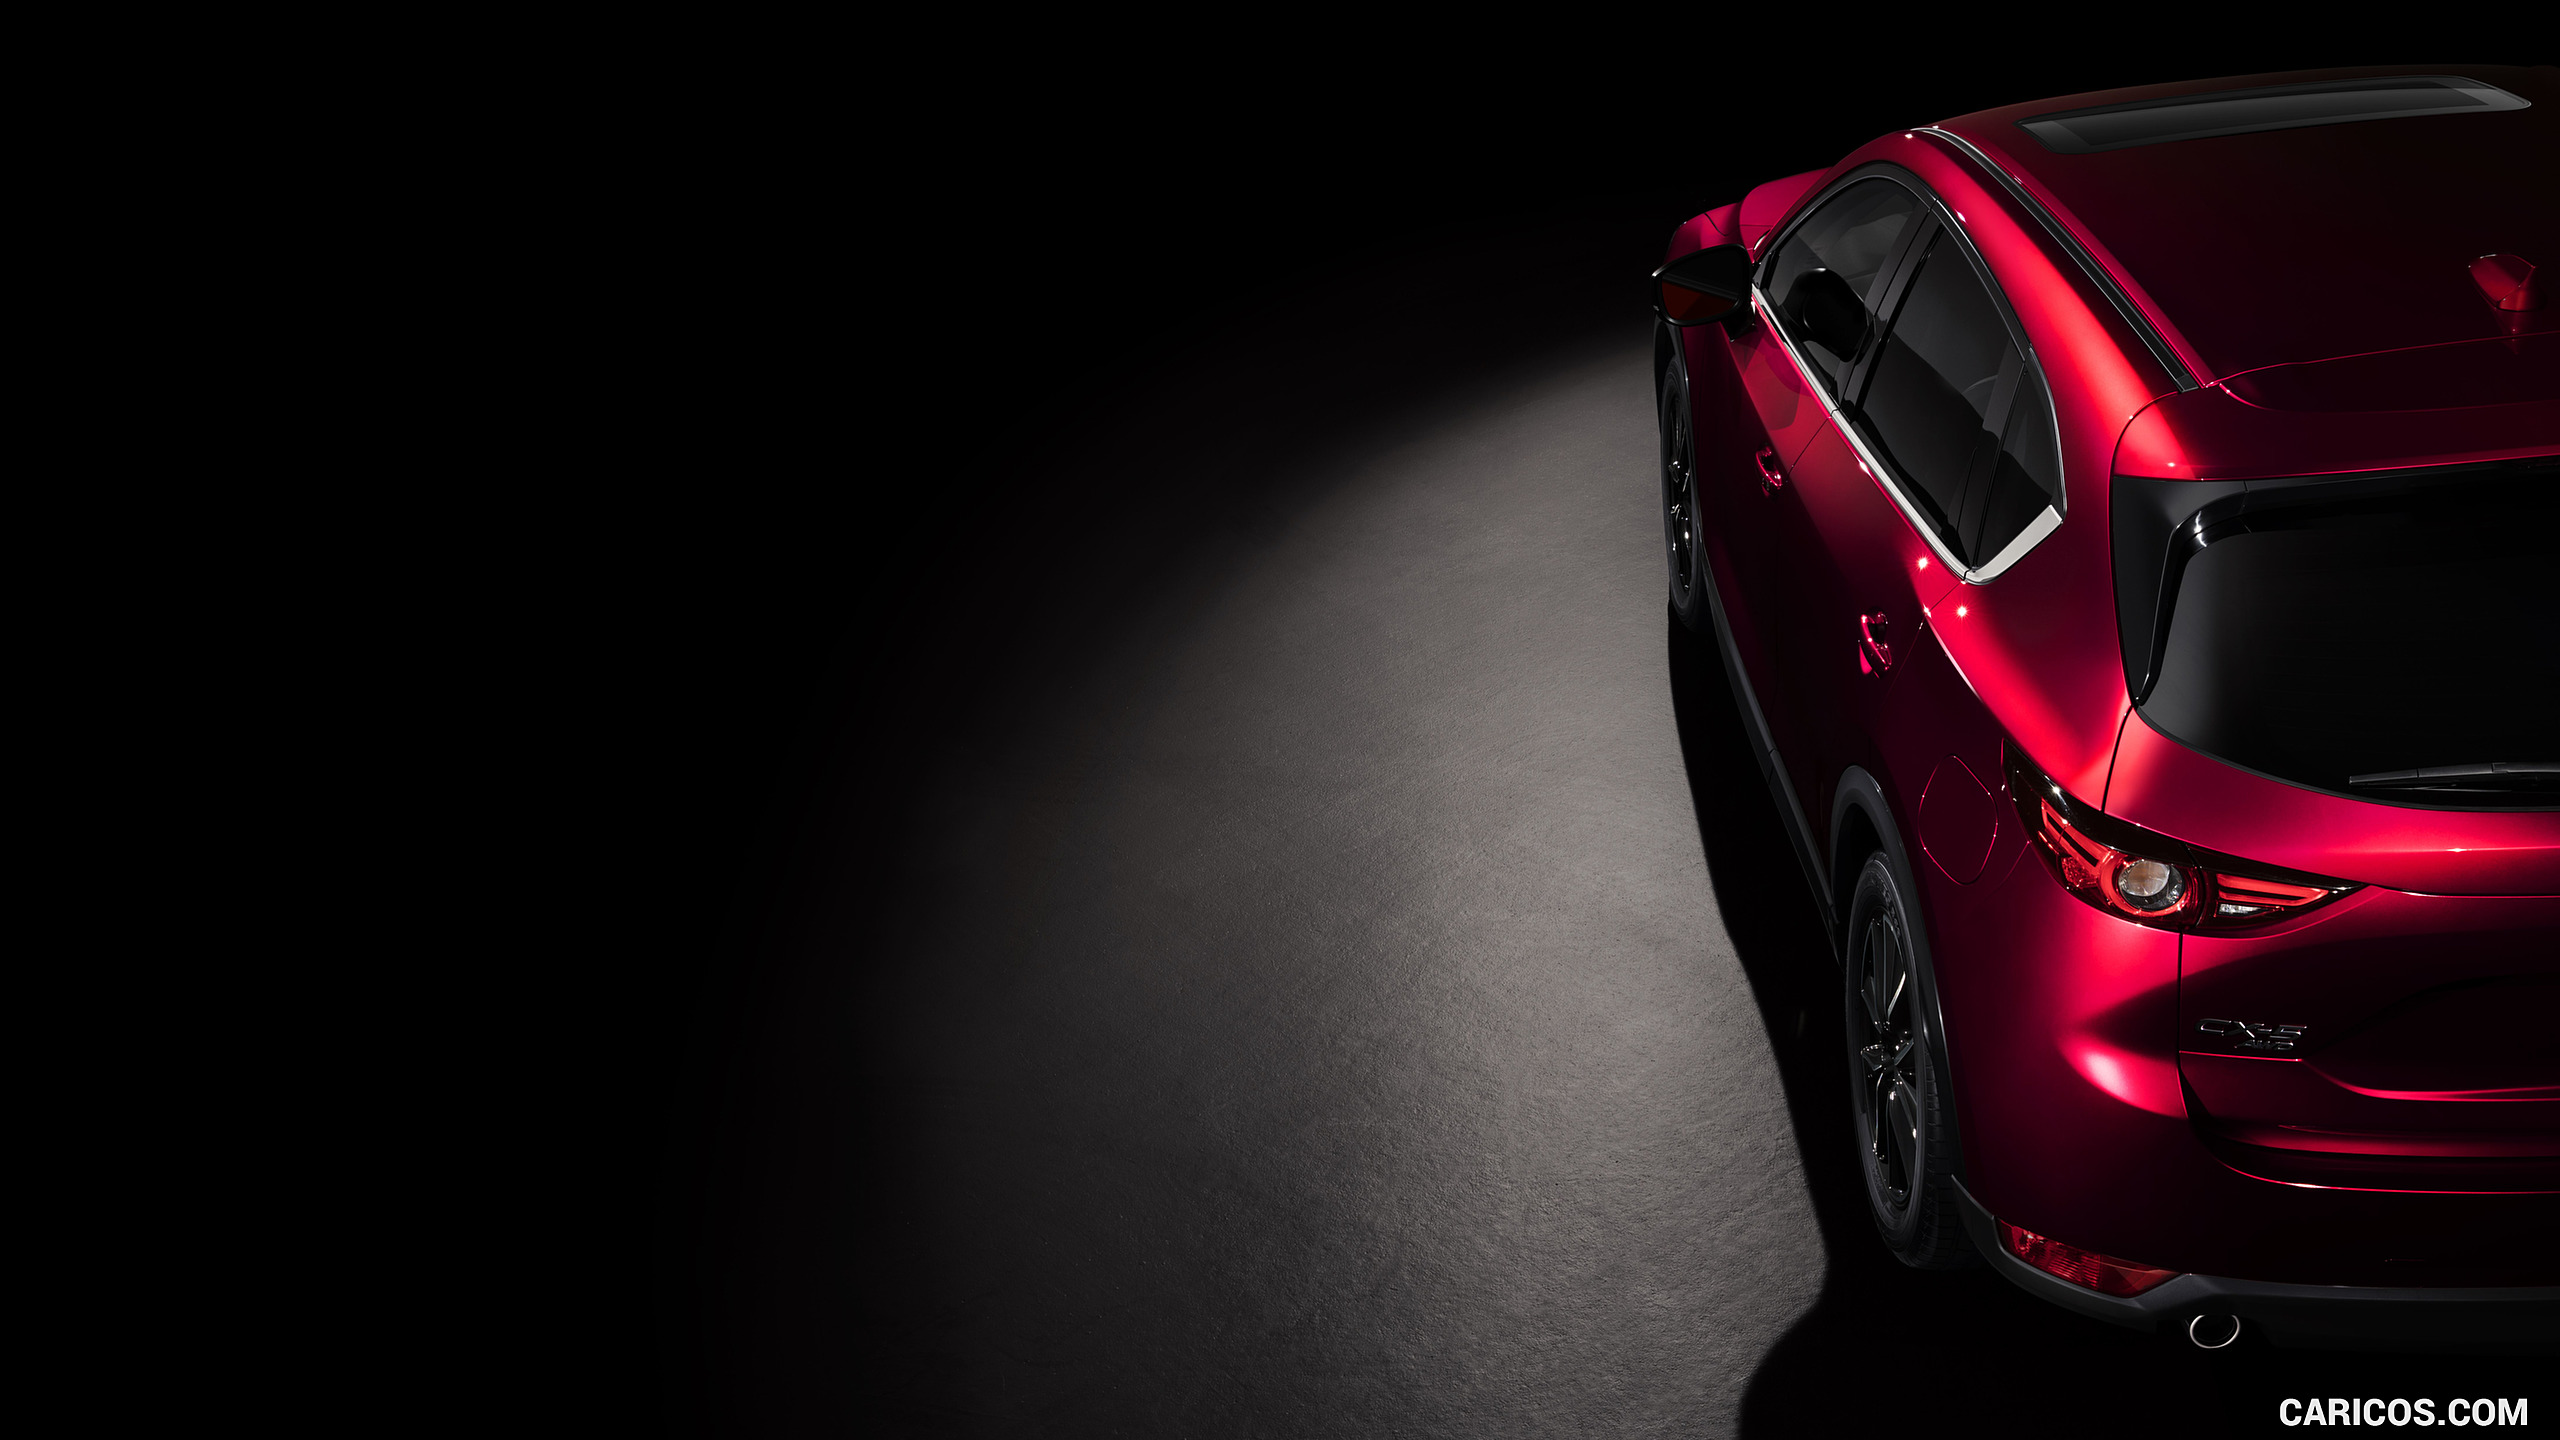 2560x1440 - Mazda CX-5 Wallpapers 25